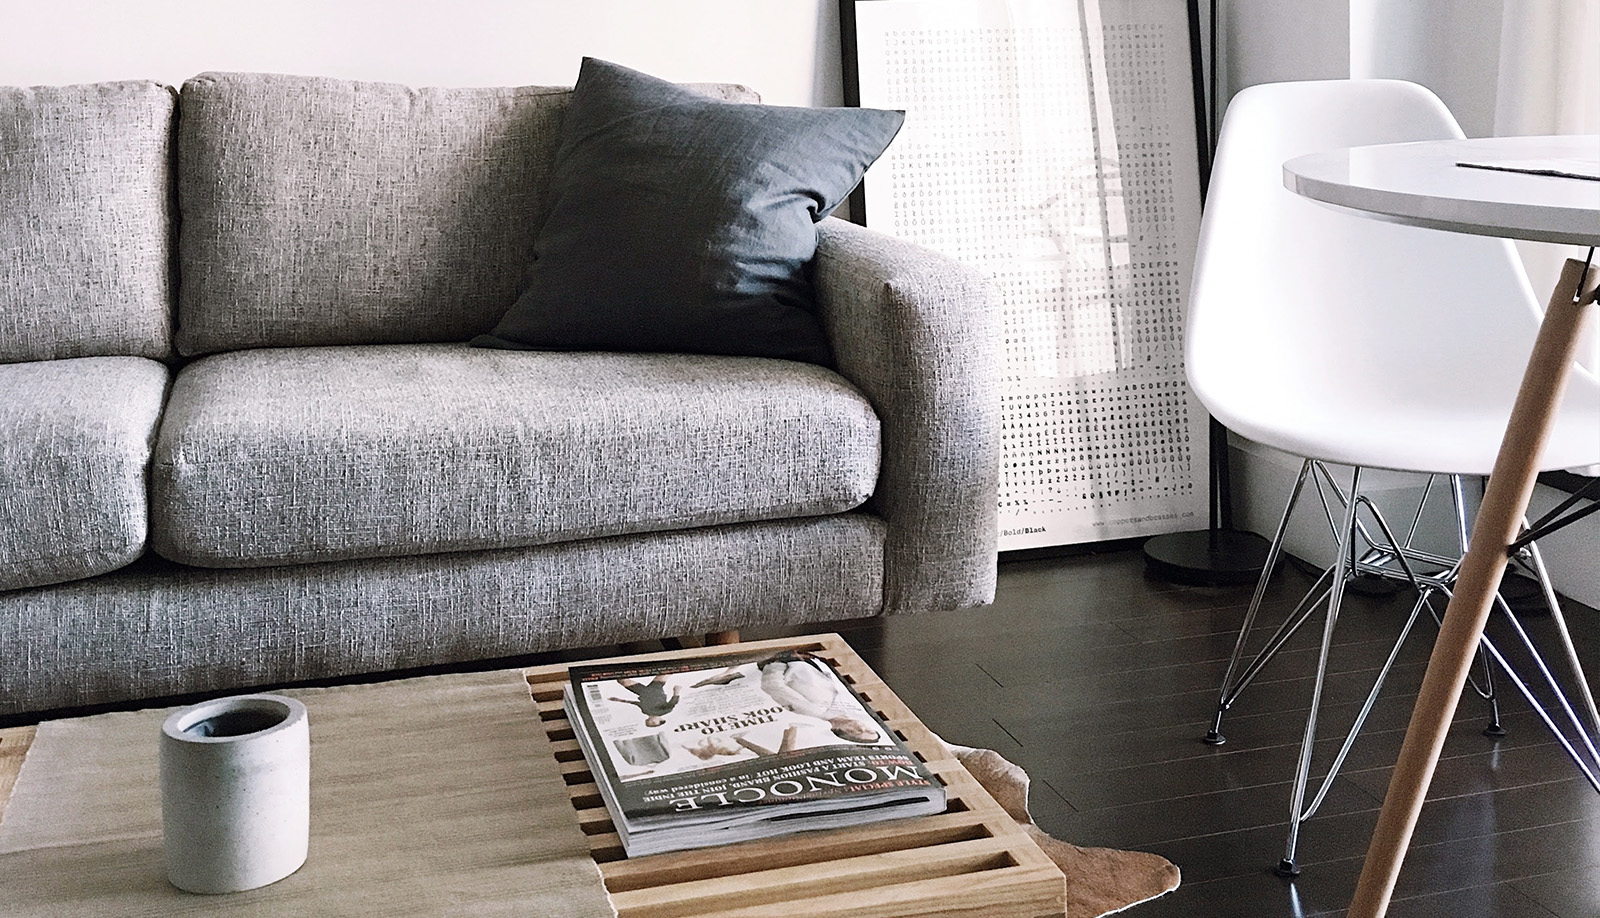 5 Unusual (Yet Impactful) Home Staging Ideas